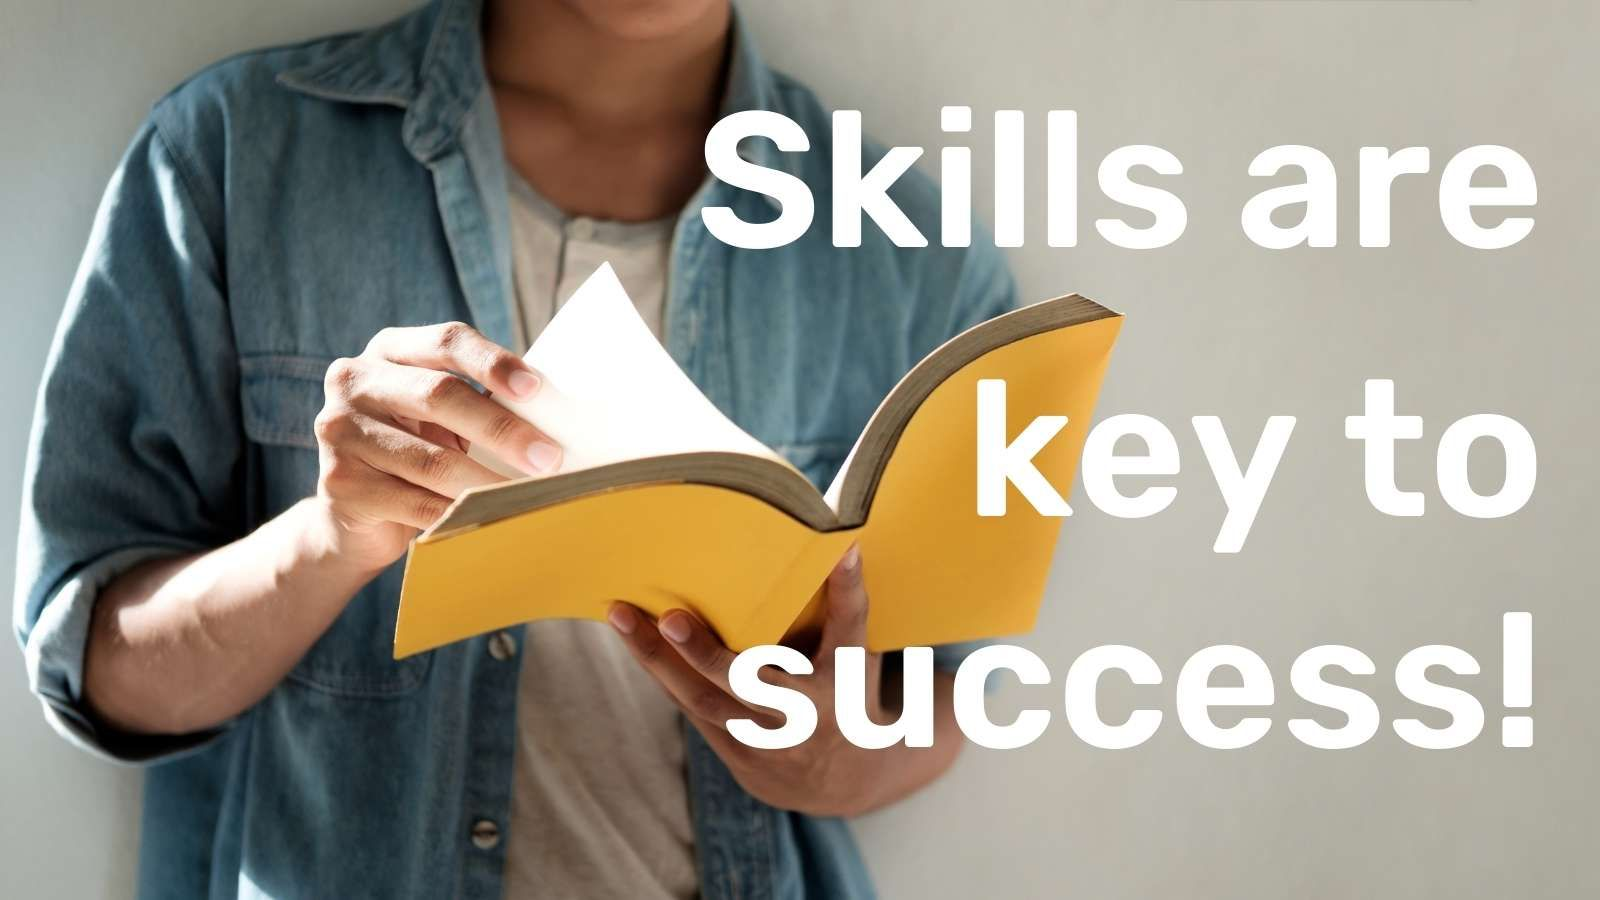 Skills are key to success!